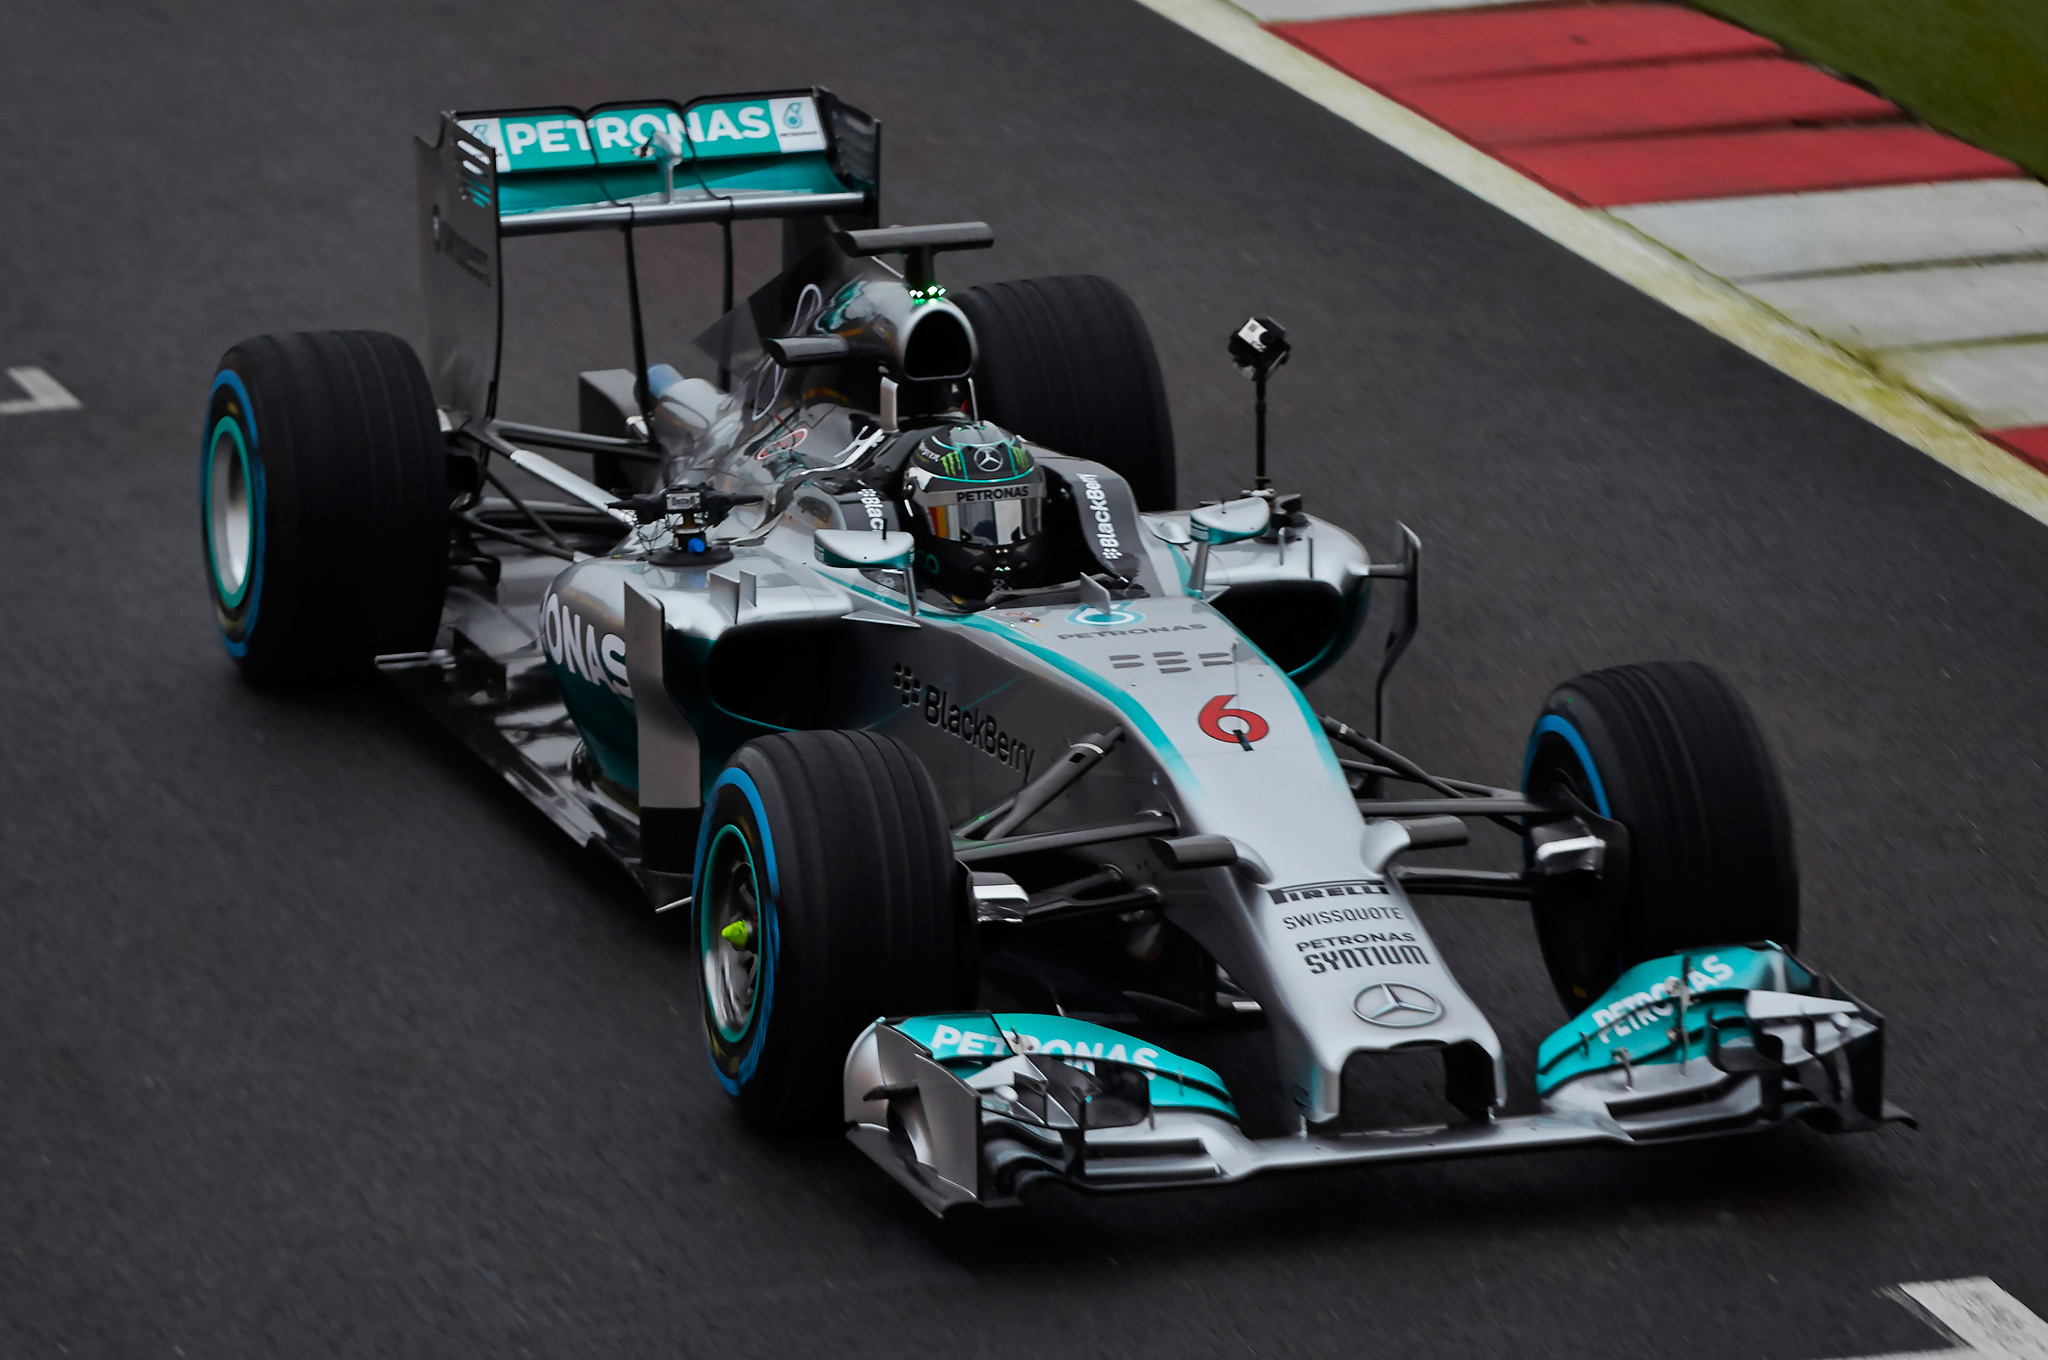 Mercedes 360-Degree Videos Give New Perspective on Formula 1